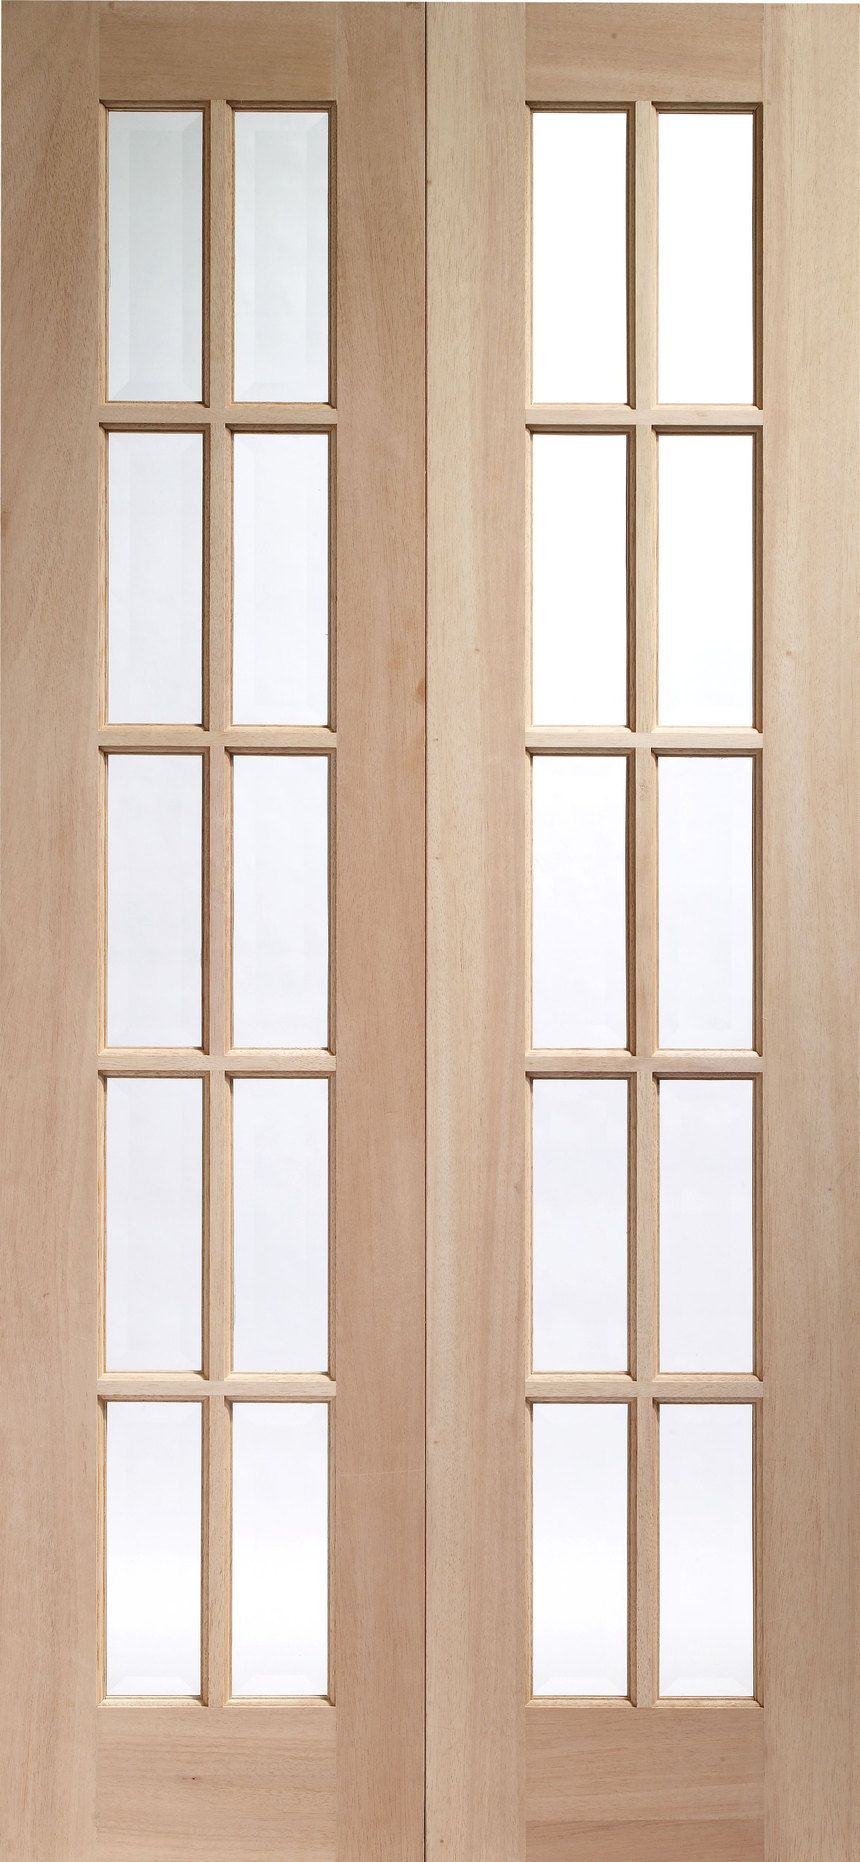 Lovely narrow interior french doors 1 office french doors doors narrow french door photos french doors hardwood eventelaan Image collections